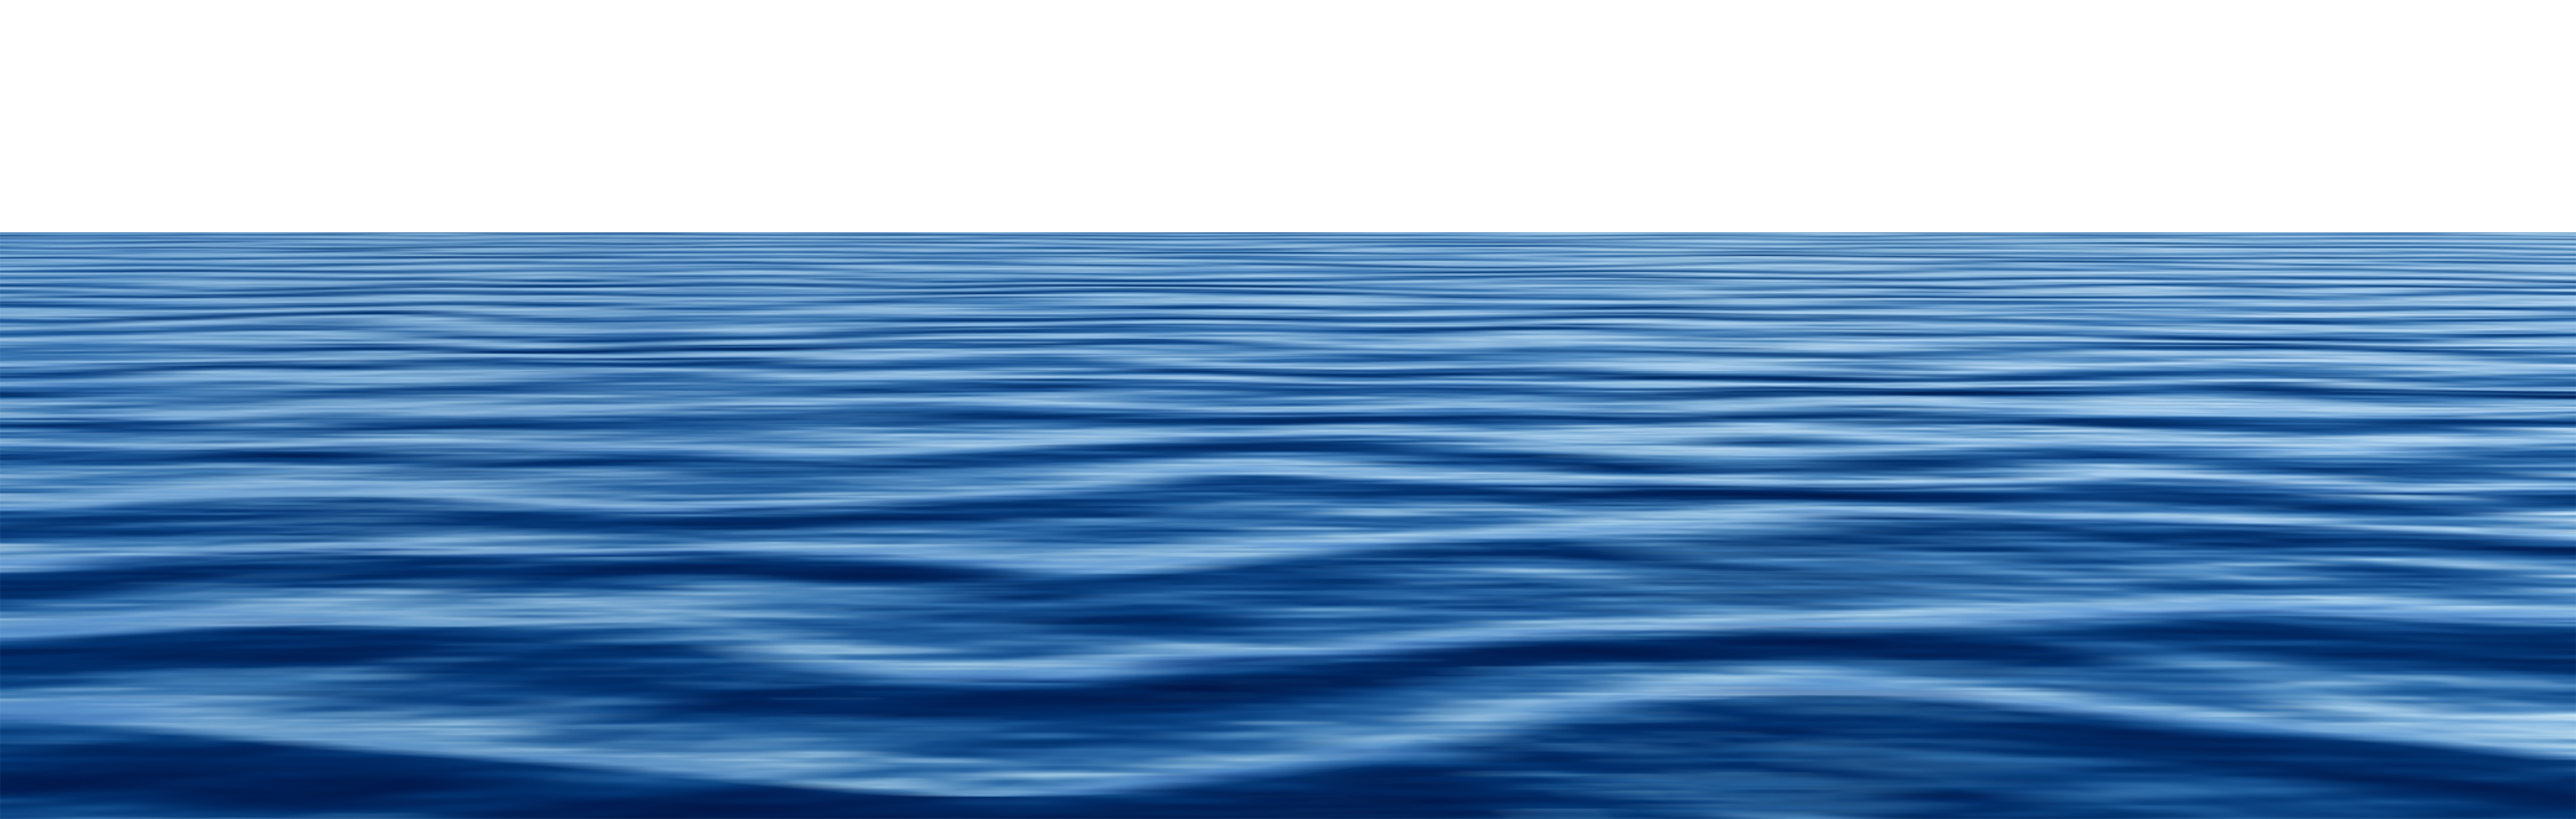 Ocean background png. Sea hd transparent images